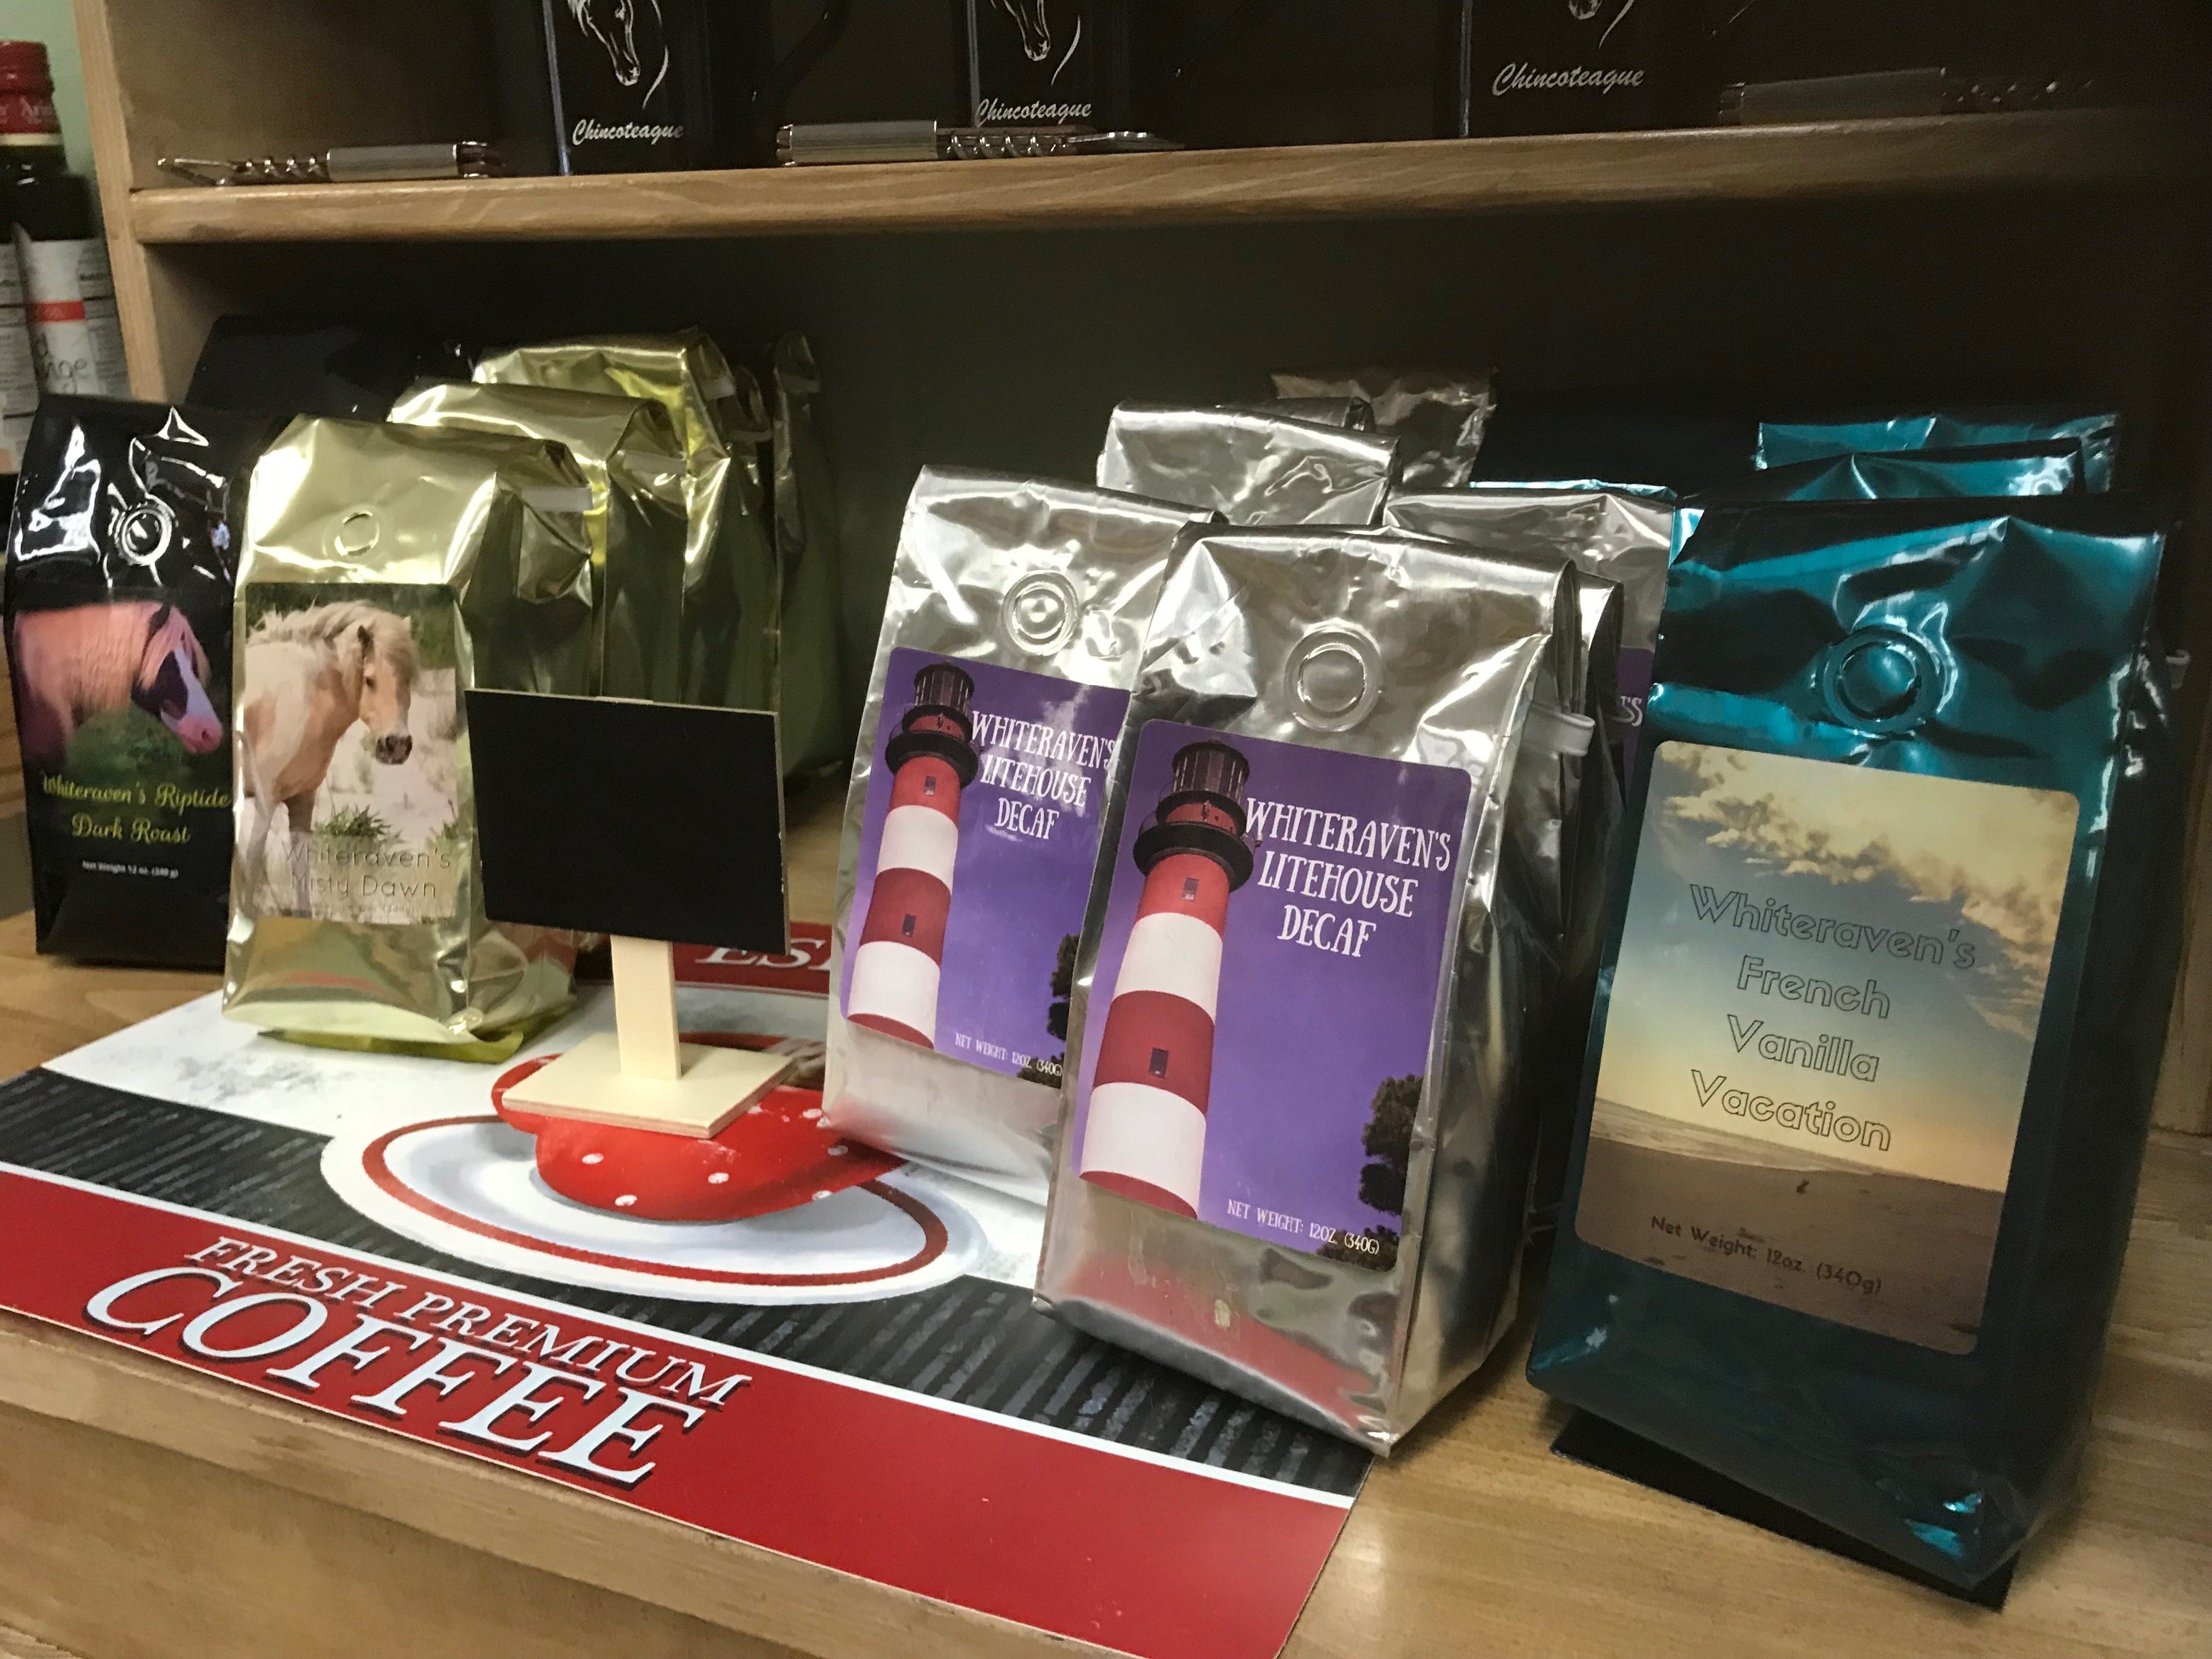 Coffees with  Chincoteague-related names sit on a shelf at Whiteraven's Nest Farm to Table store on Chincoteague Road in Wallops Island, Virginia on Friday, March 8, 2019.